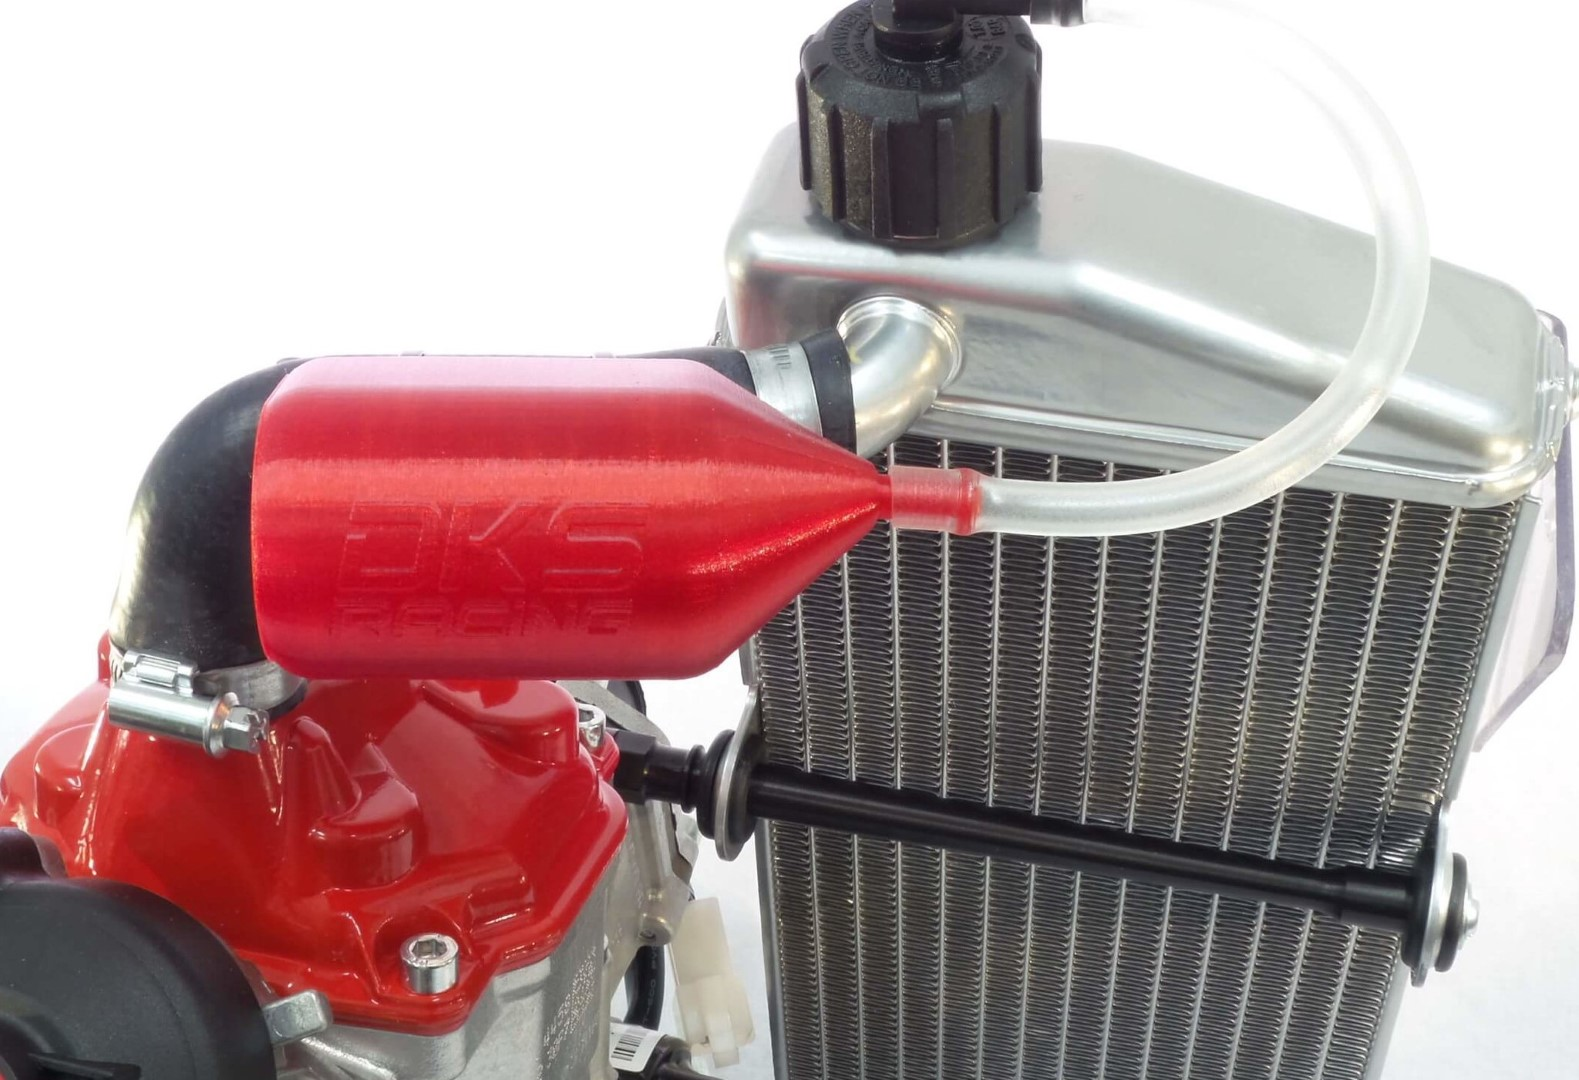 Rotax overflow bottle and gearbox breather kit - Red